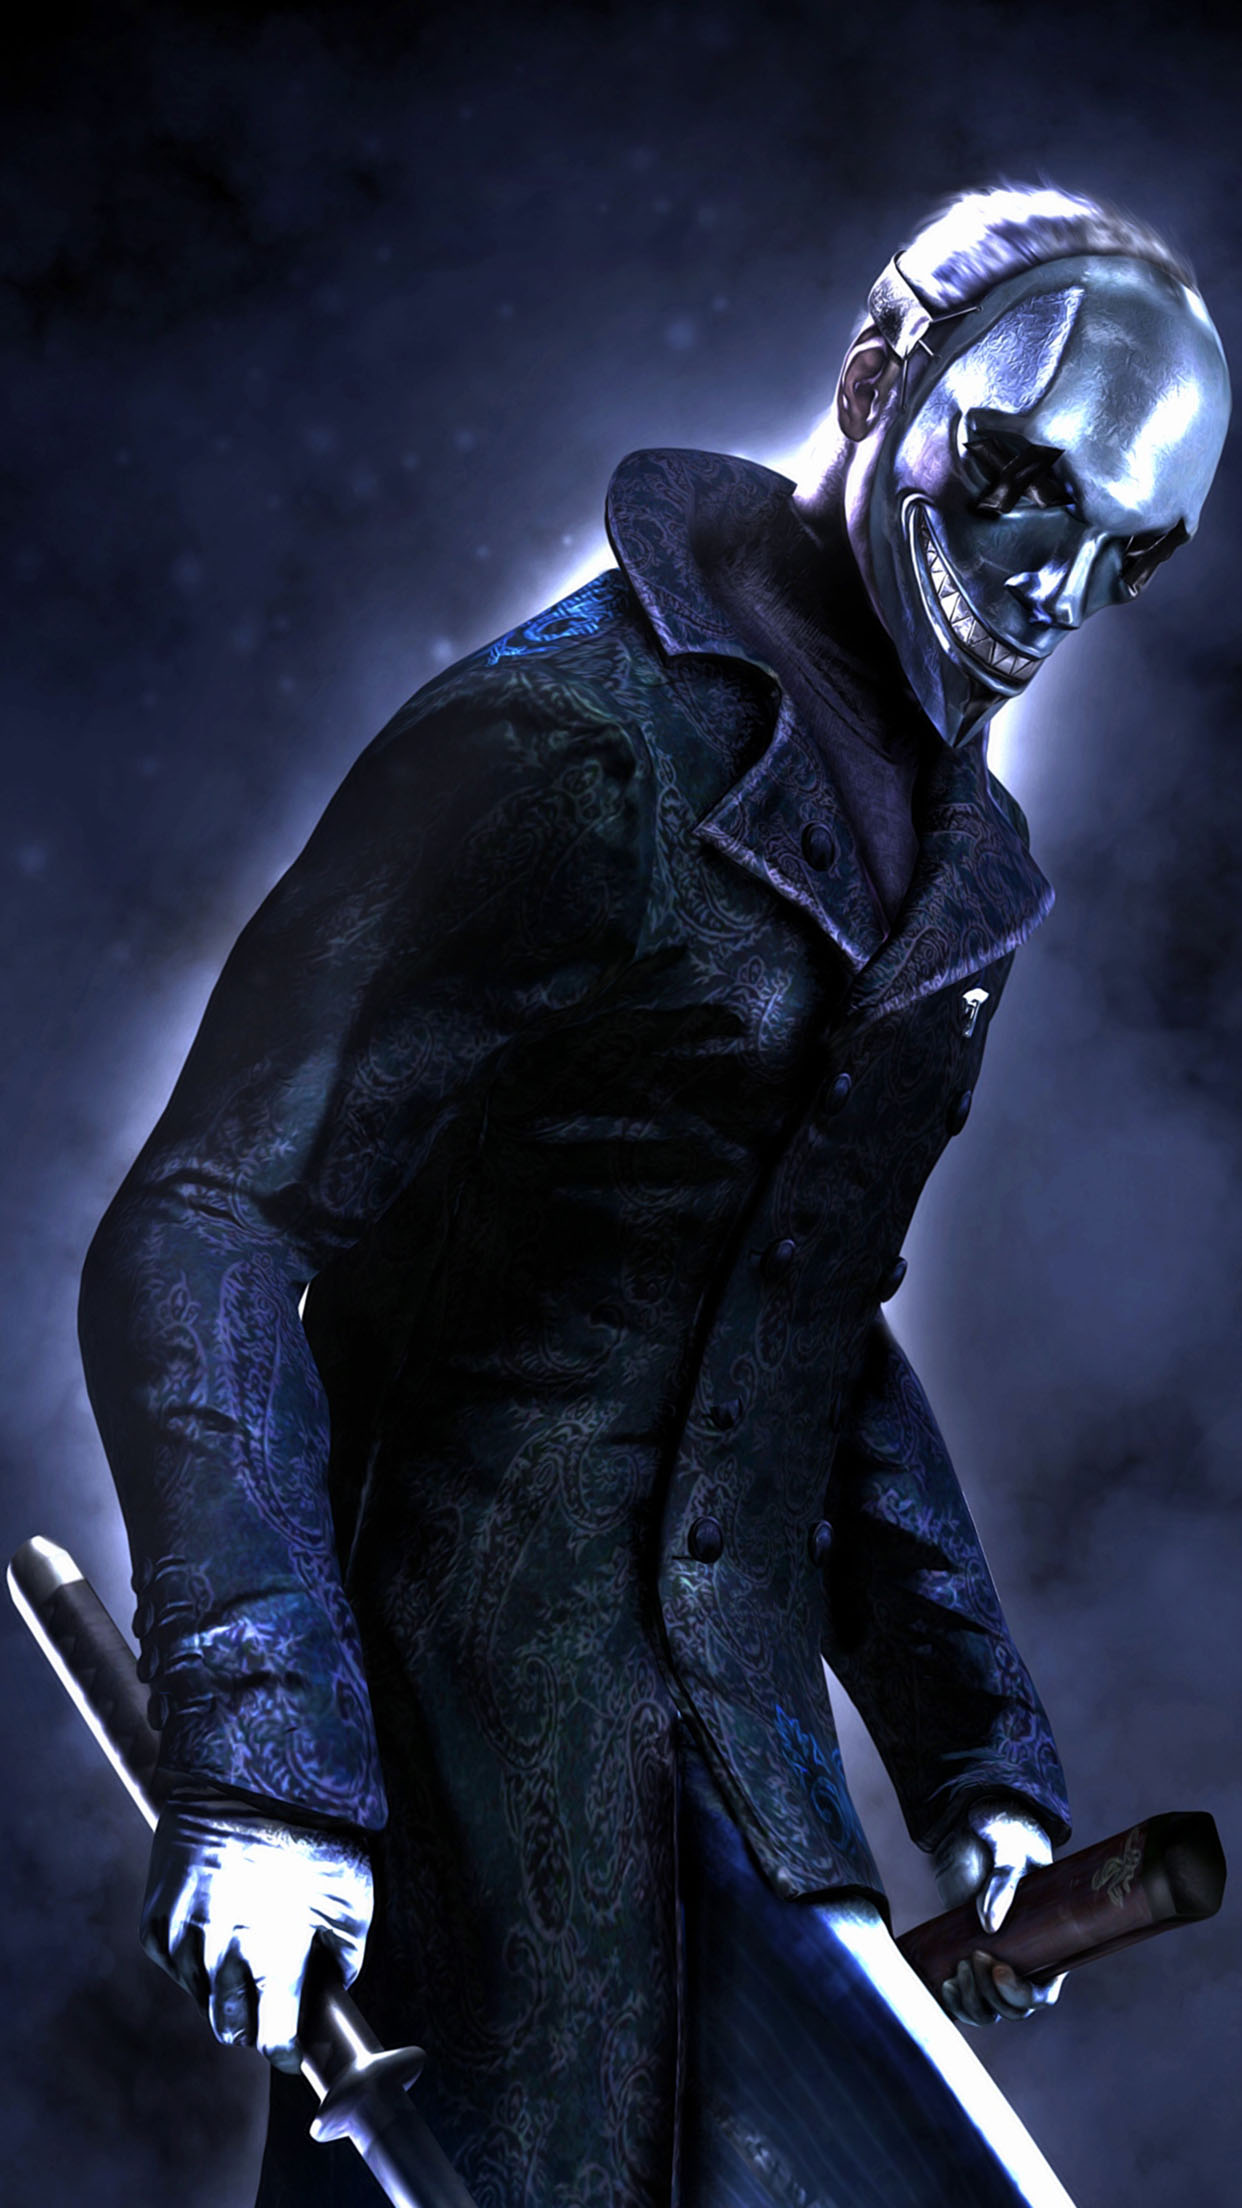 Devil May Cry Vergil 3Wallpapers iPhone Parallax Devil May Cry: Vergil